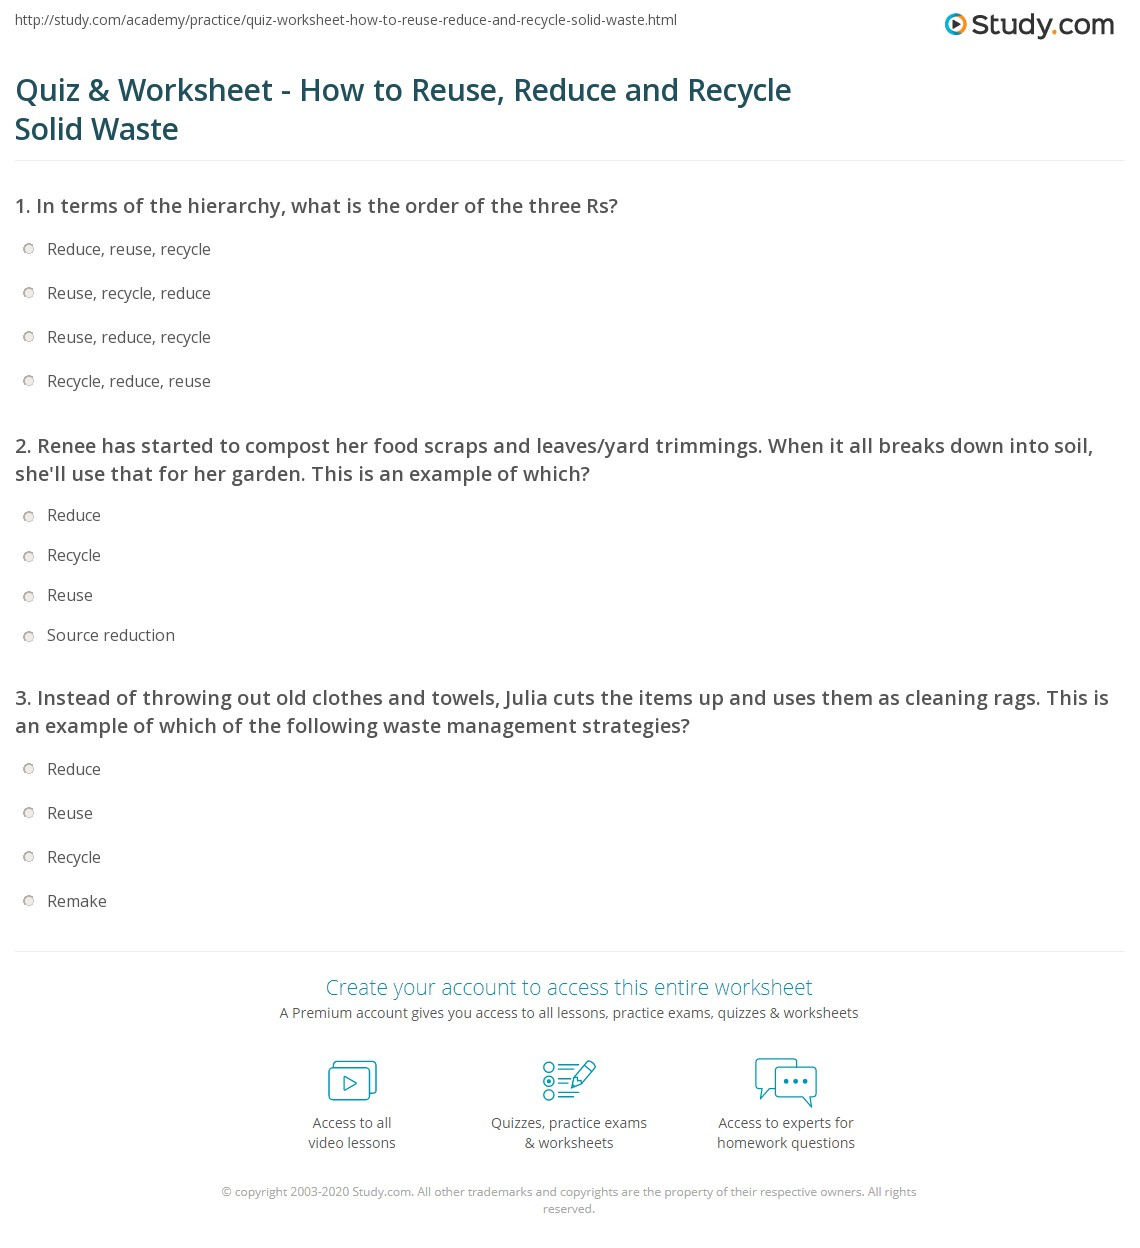 Quiz W Ksheet How To Reuse Reduce Nd Recycle Lid W Ste